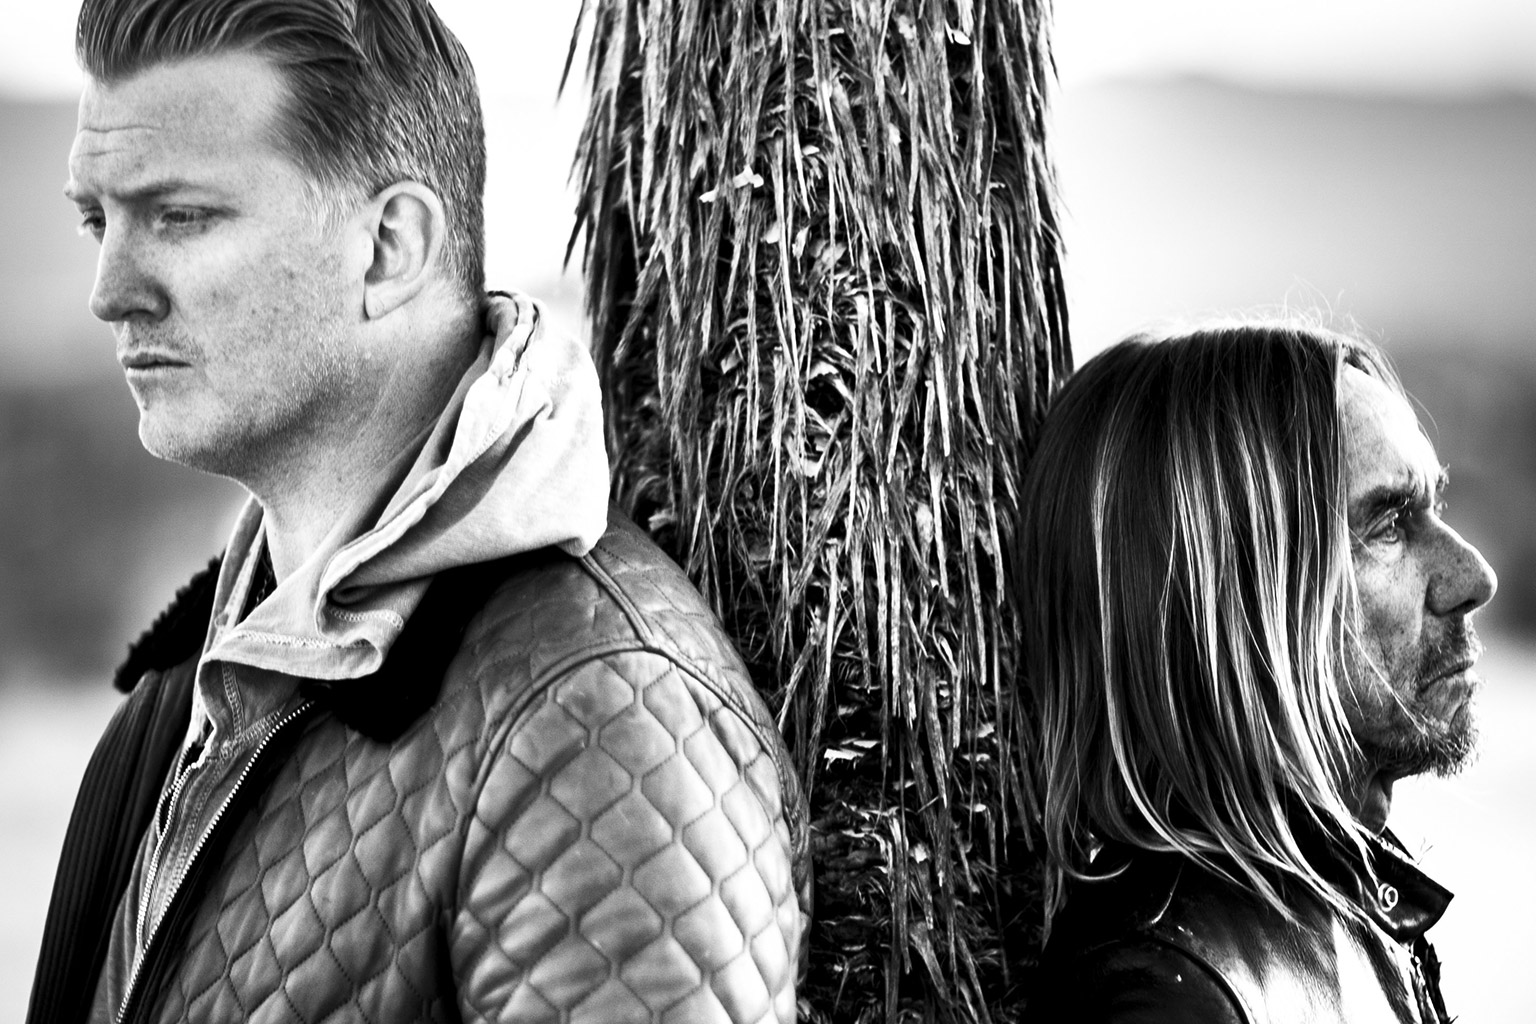 josh-homme-iggy-pop-press-crop-andreas-neumann